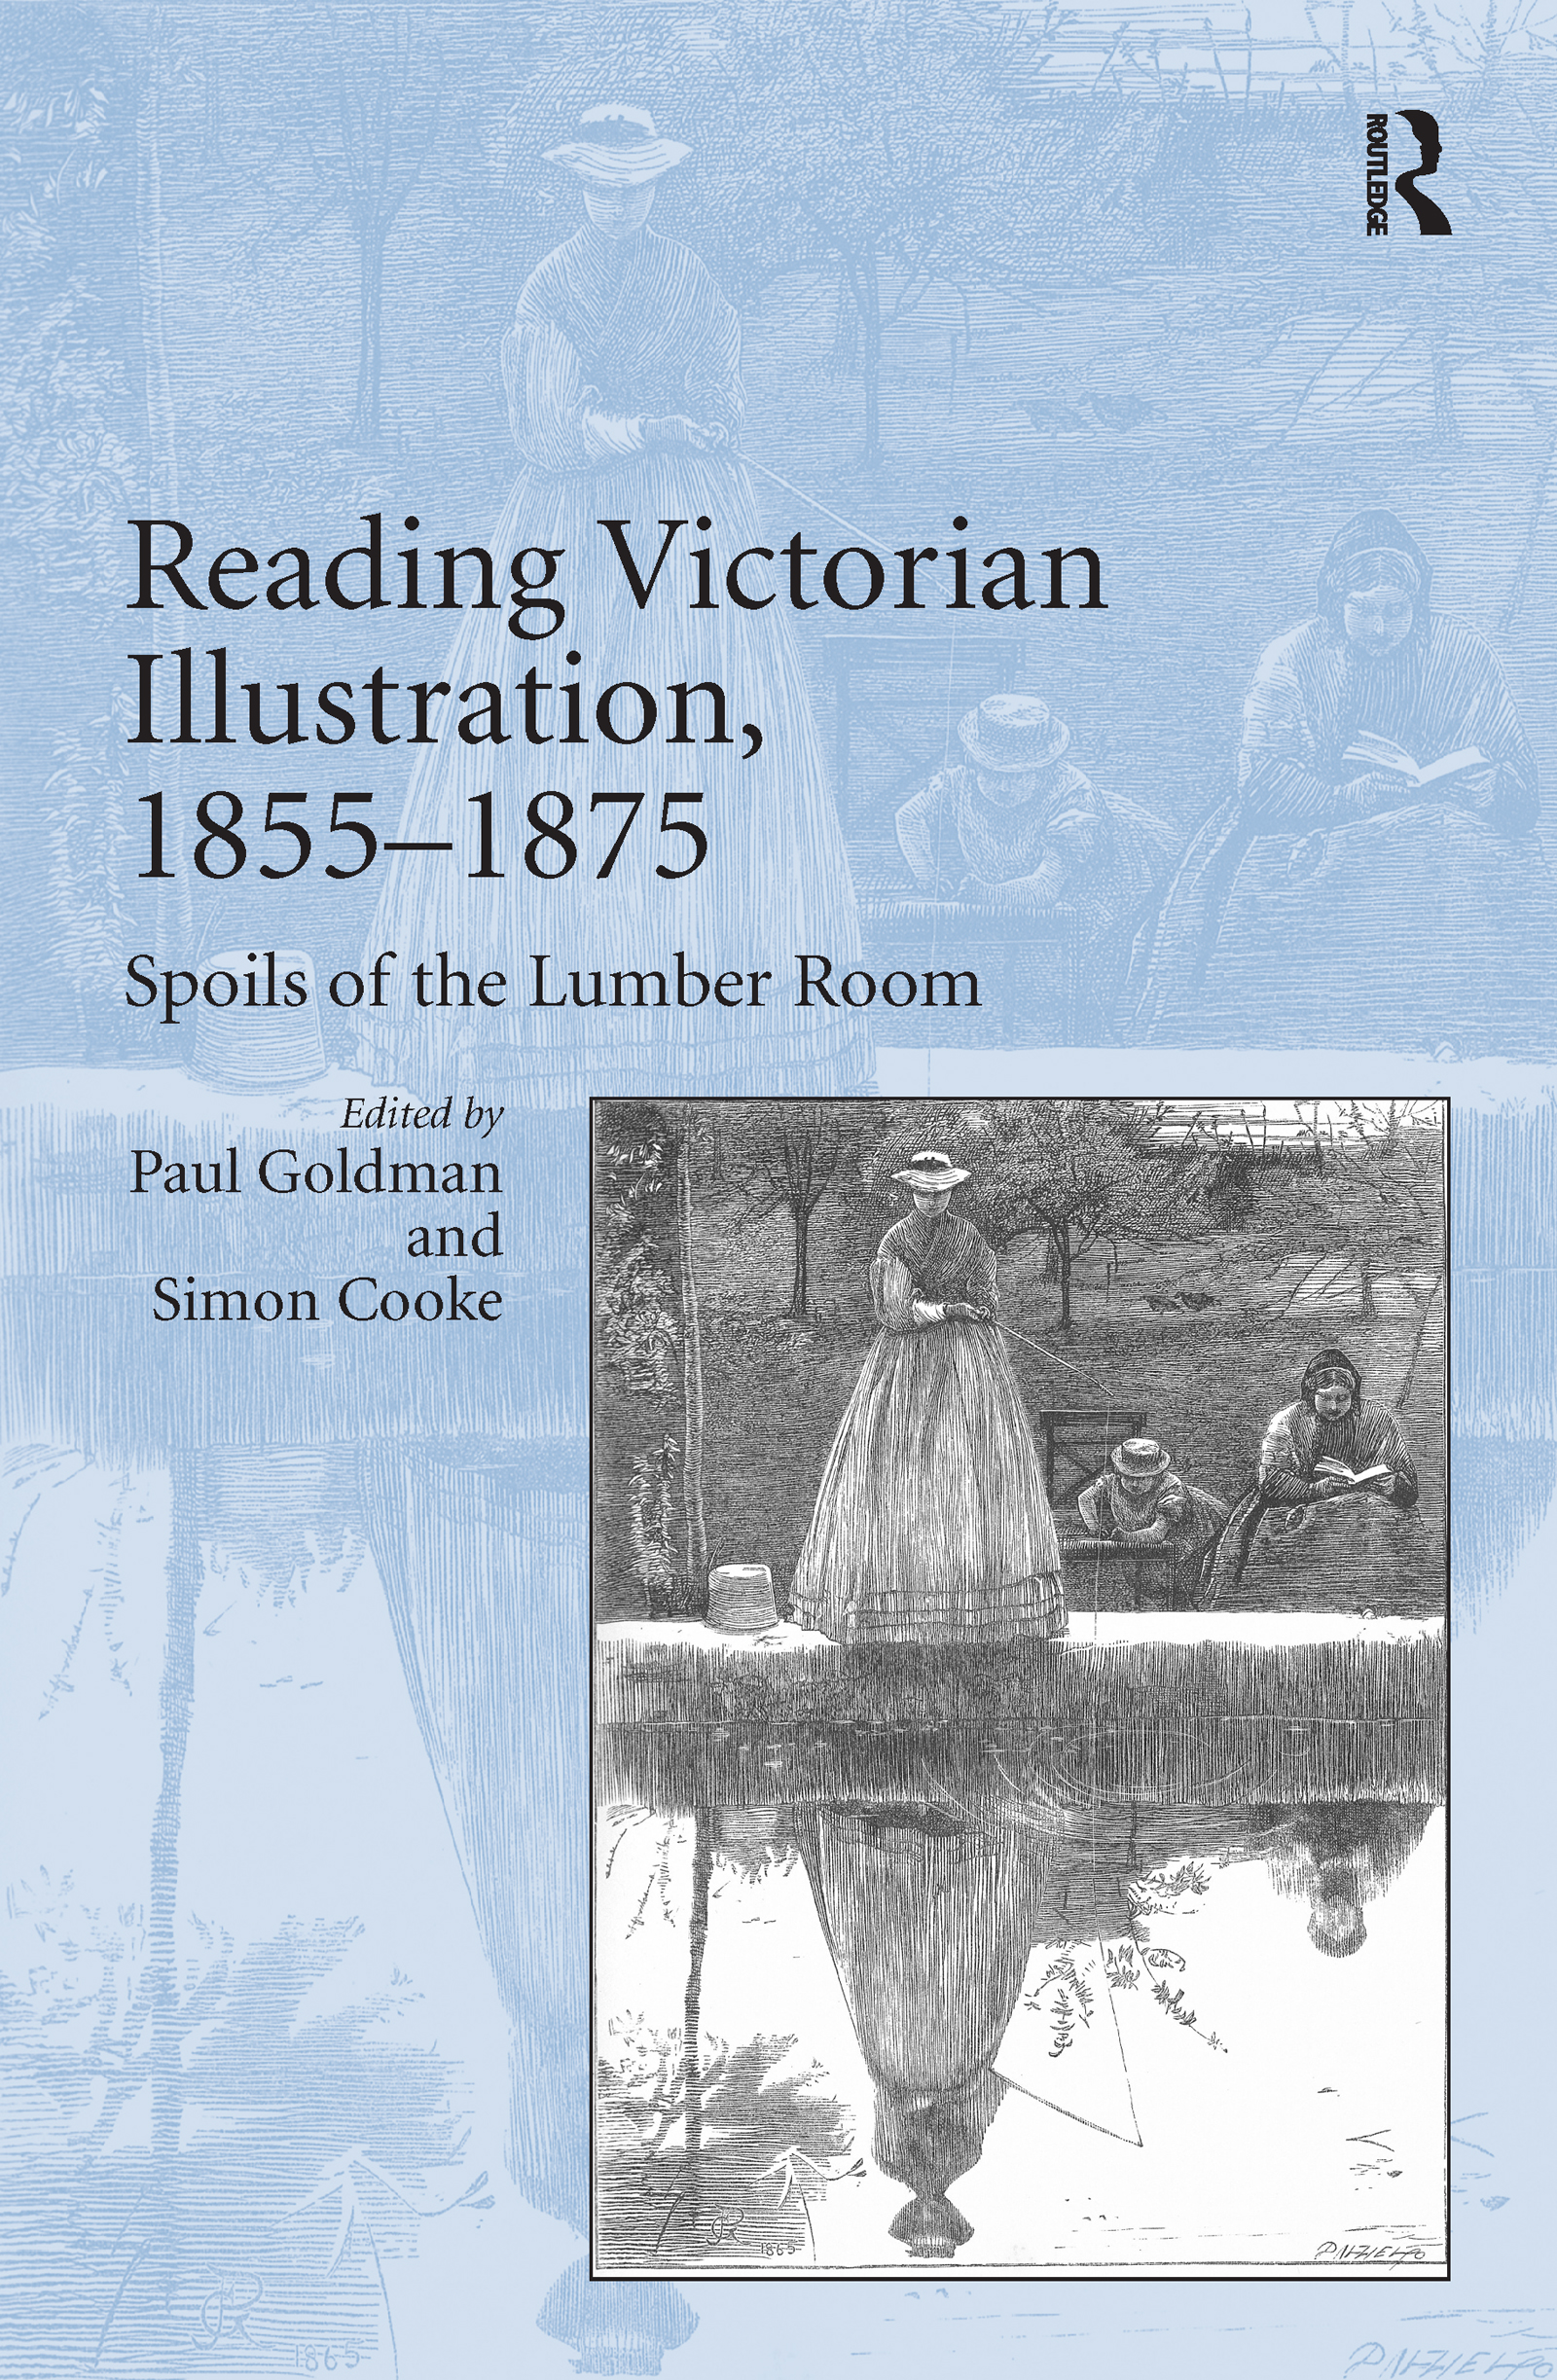 Reading Victorian Illustration, 1855-1875